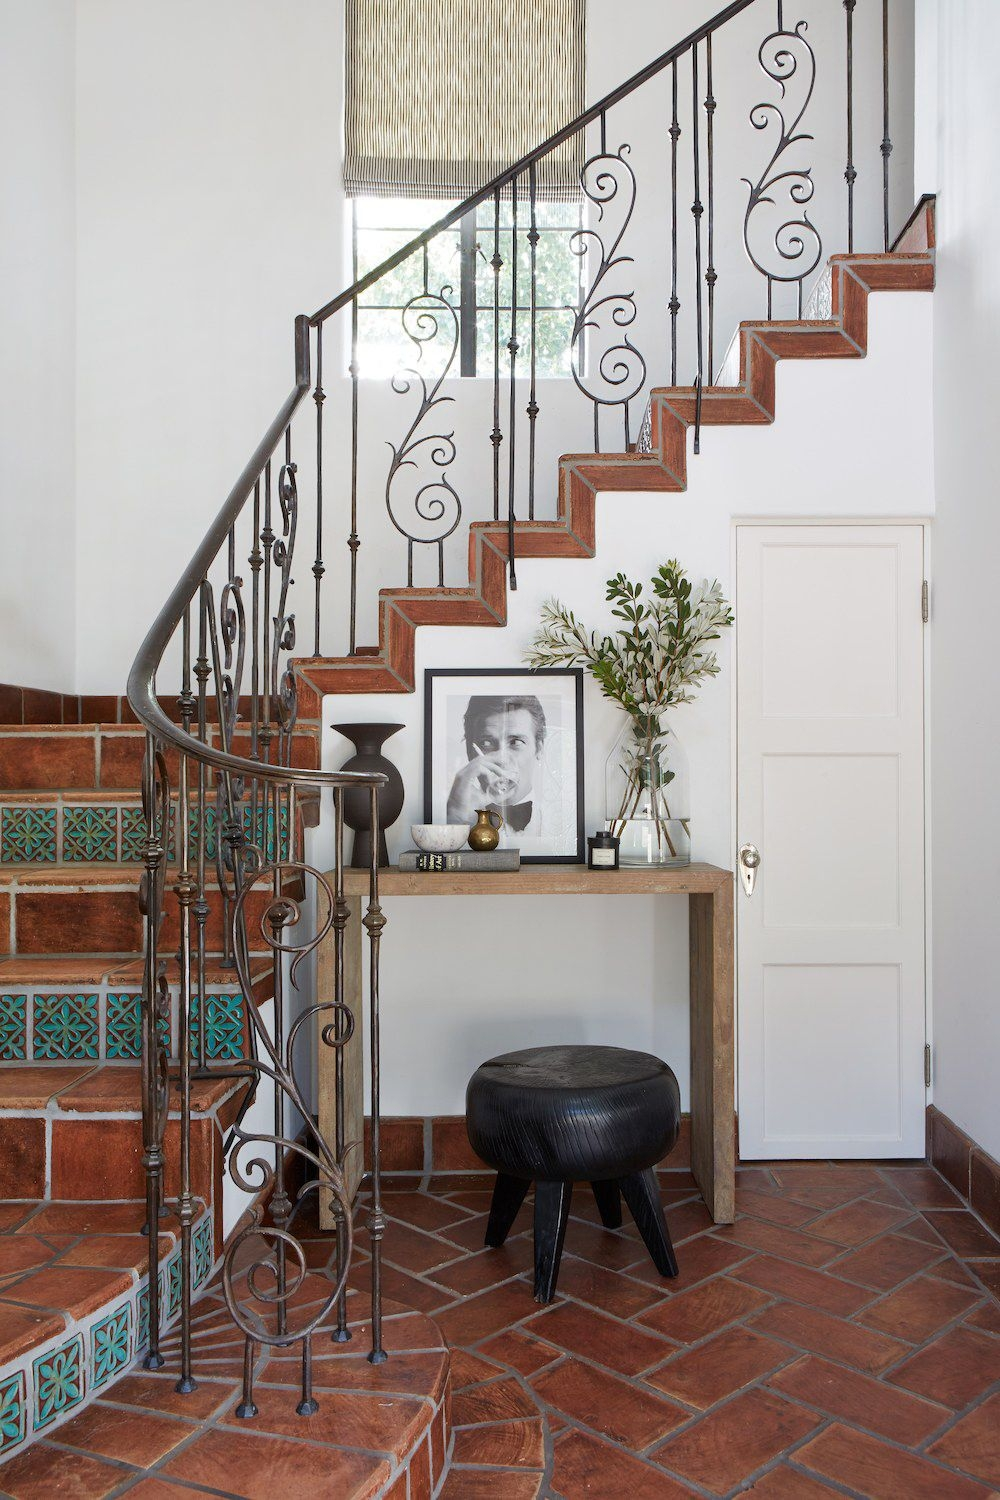 25 Unique Stair Designs Beautiful Stair Ideas For Your House | Pop Design For Stairs Wall | Frame Up | Main Entrance | Wall Paper | Entry Wall | Luxury